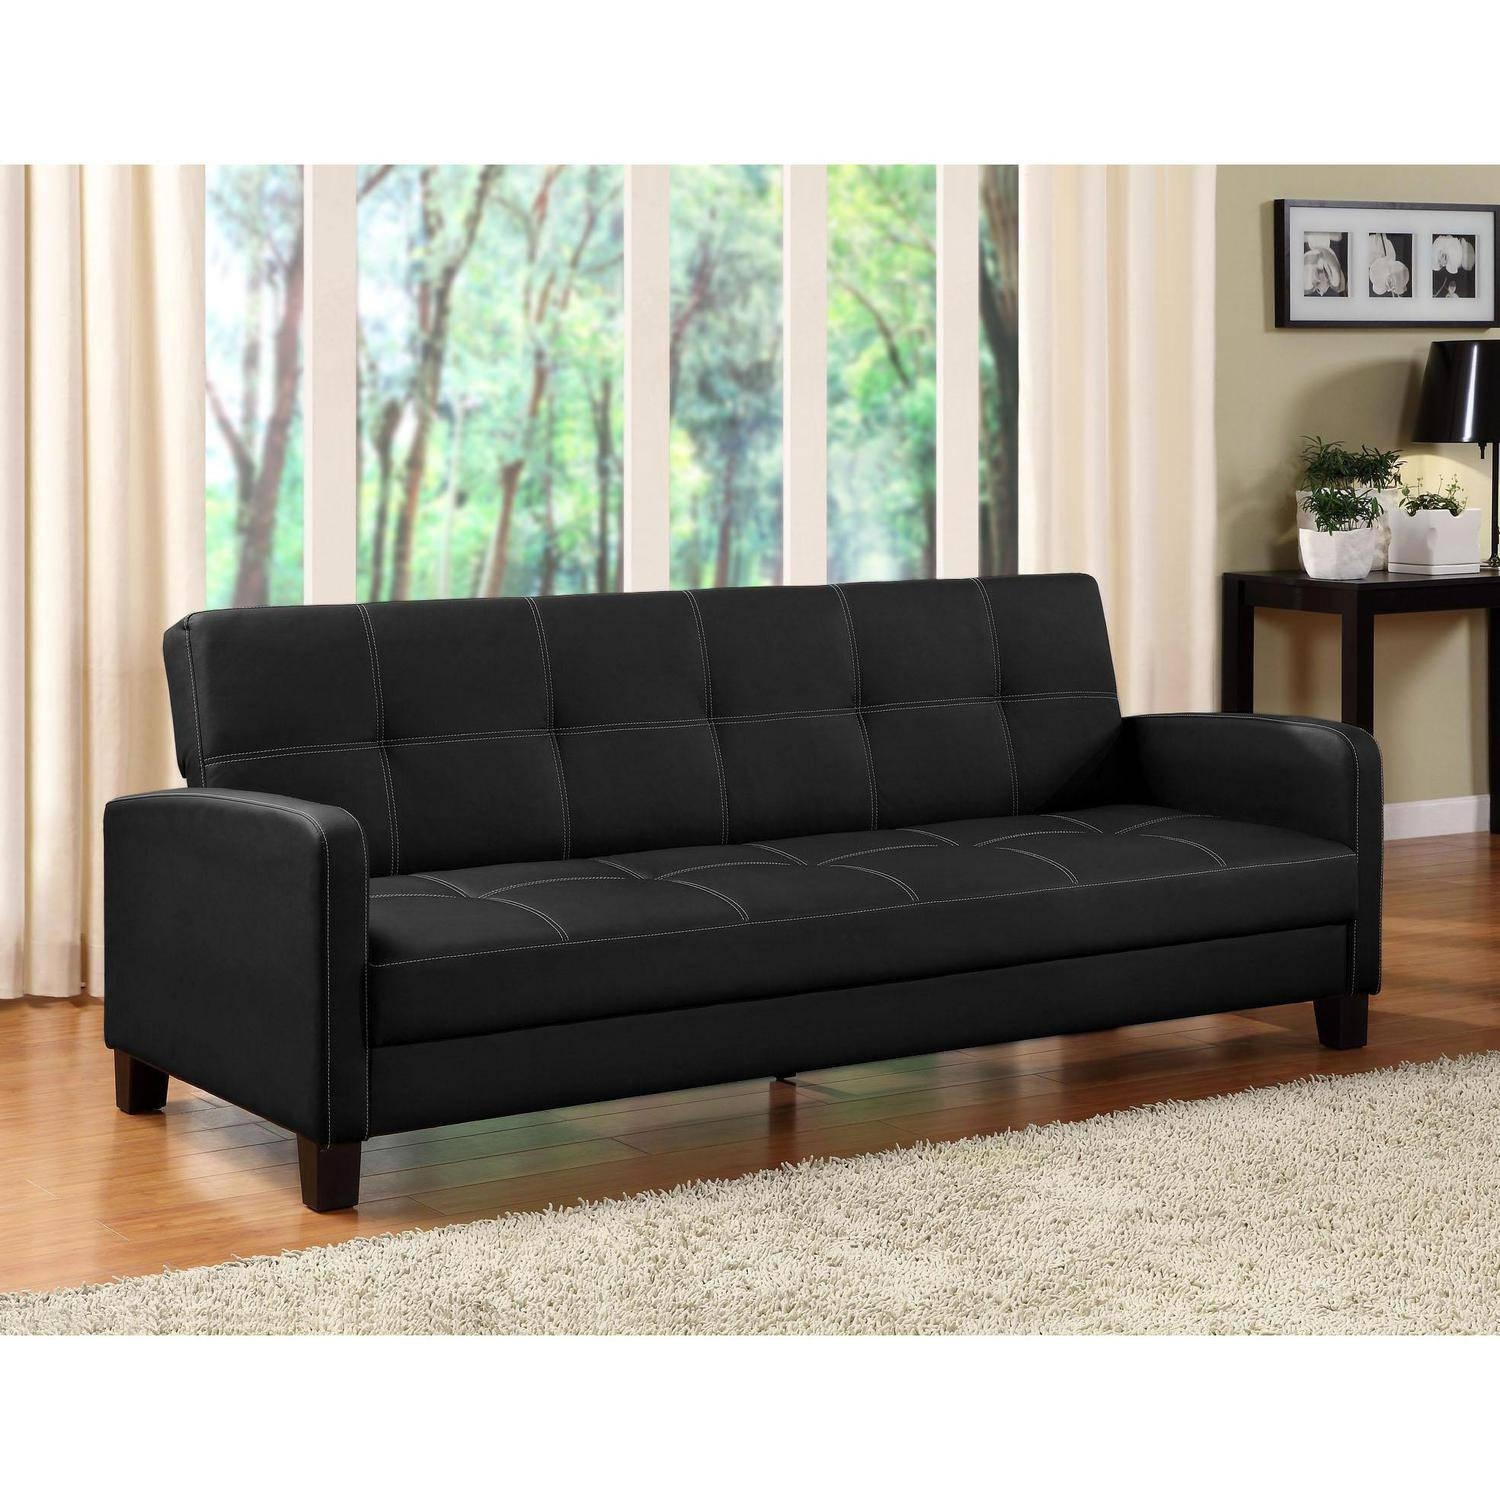 Sofas Center : Perfect Usedn Leather Sleeper Sofa For Sheets Queen Within Sears Sleeper Sofas (Image 9 of 20)